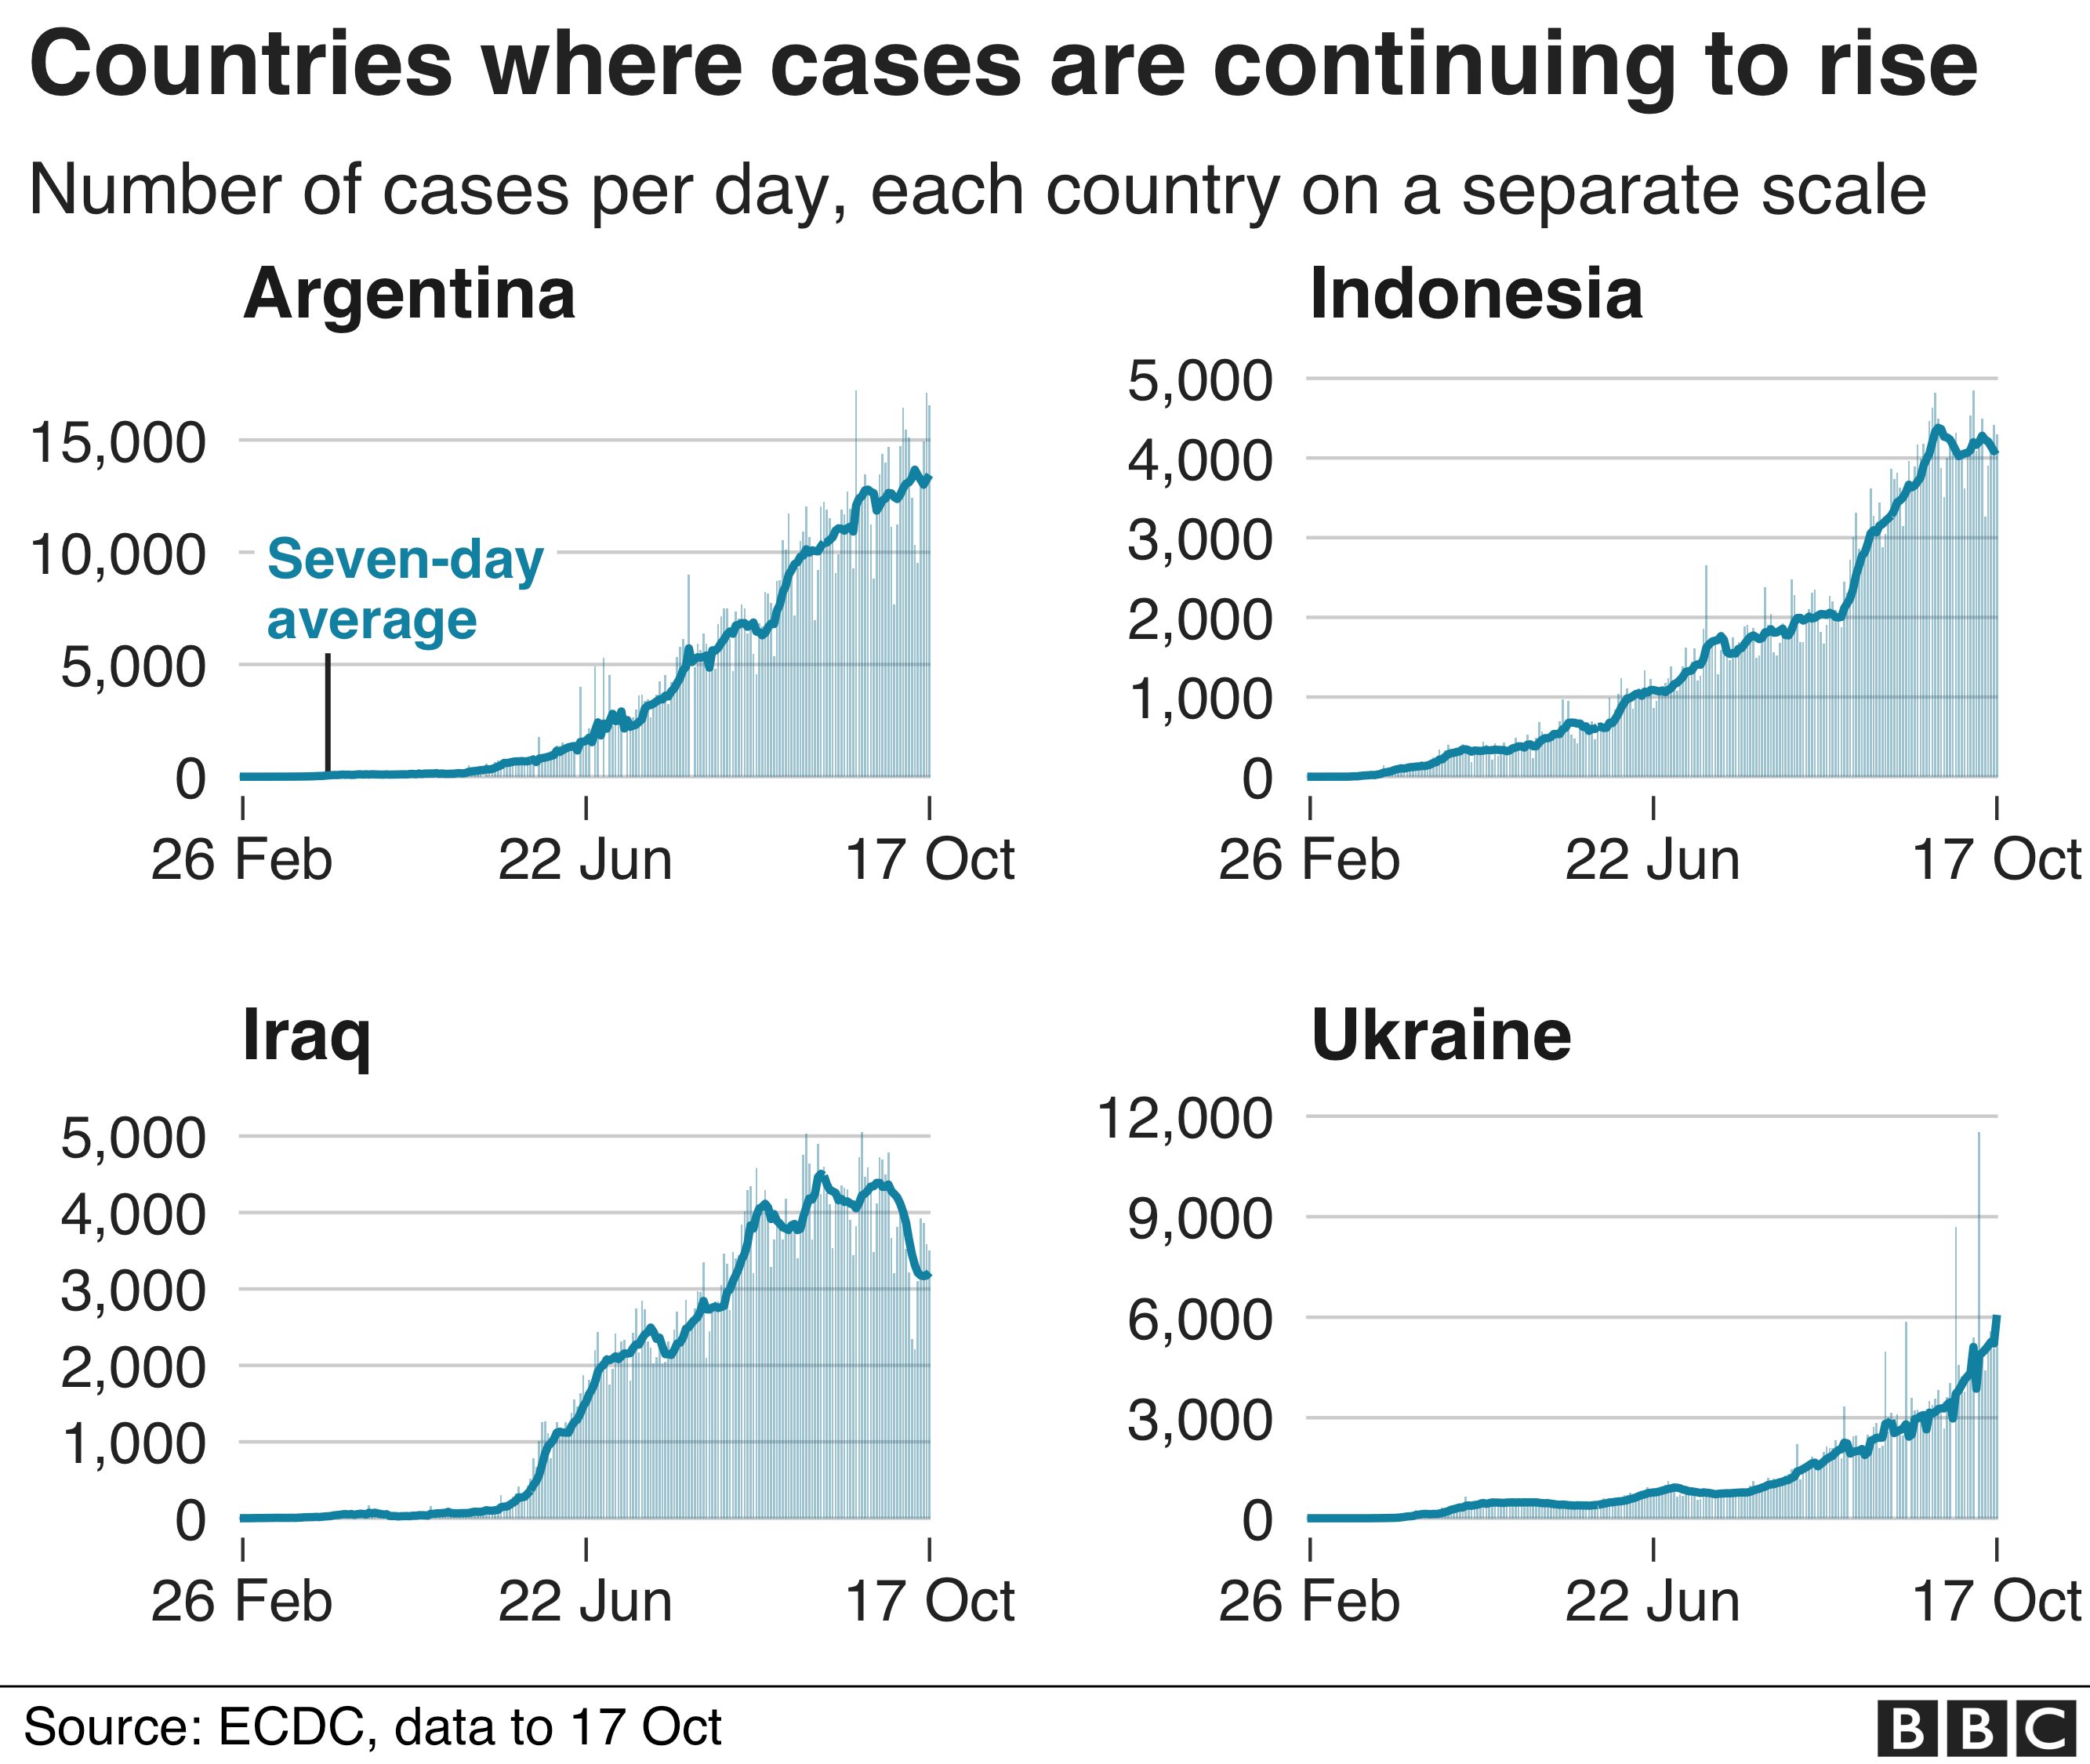 Chart shows four countries where cases are still rising steadily, Argentina, Indonesia, Iraq and Ukraine